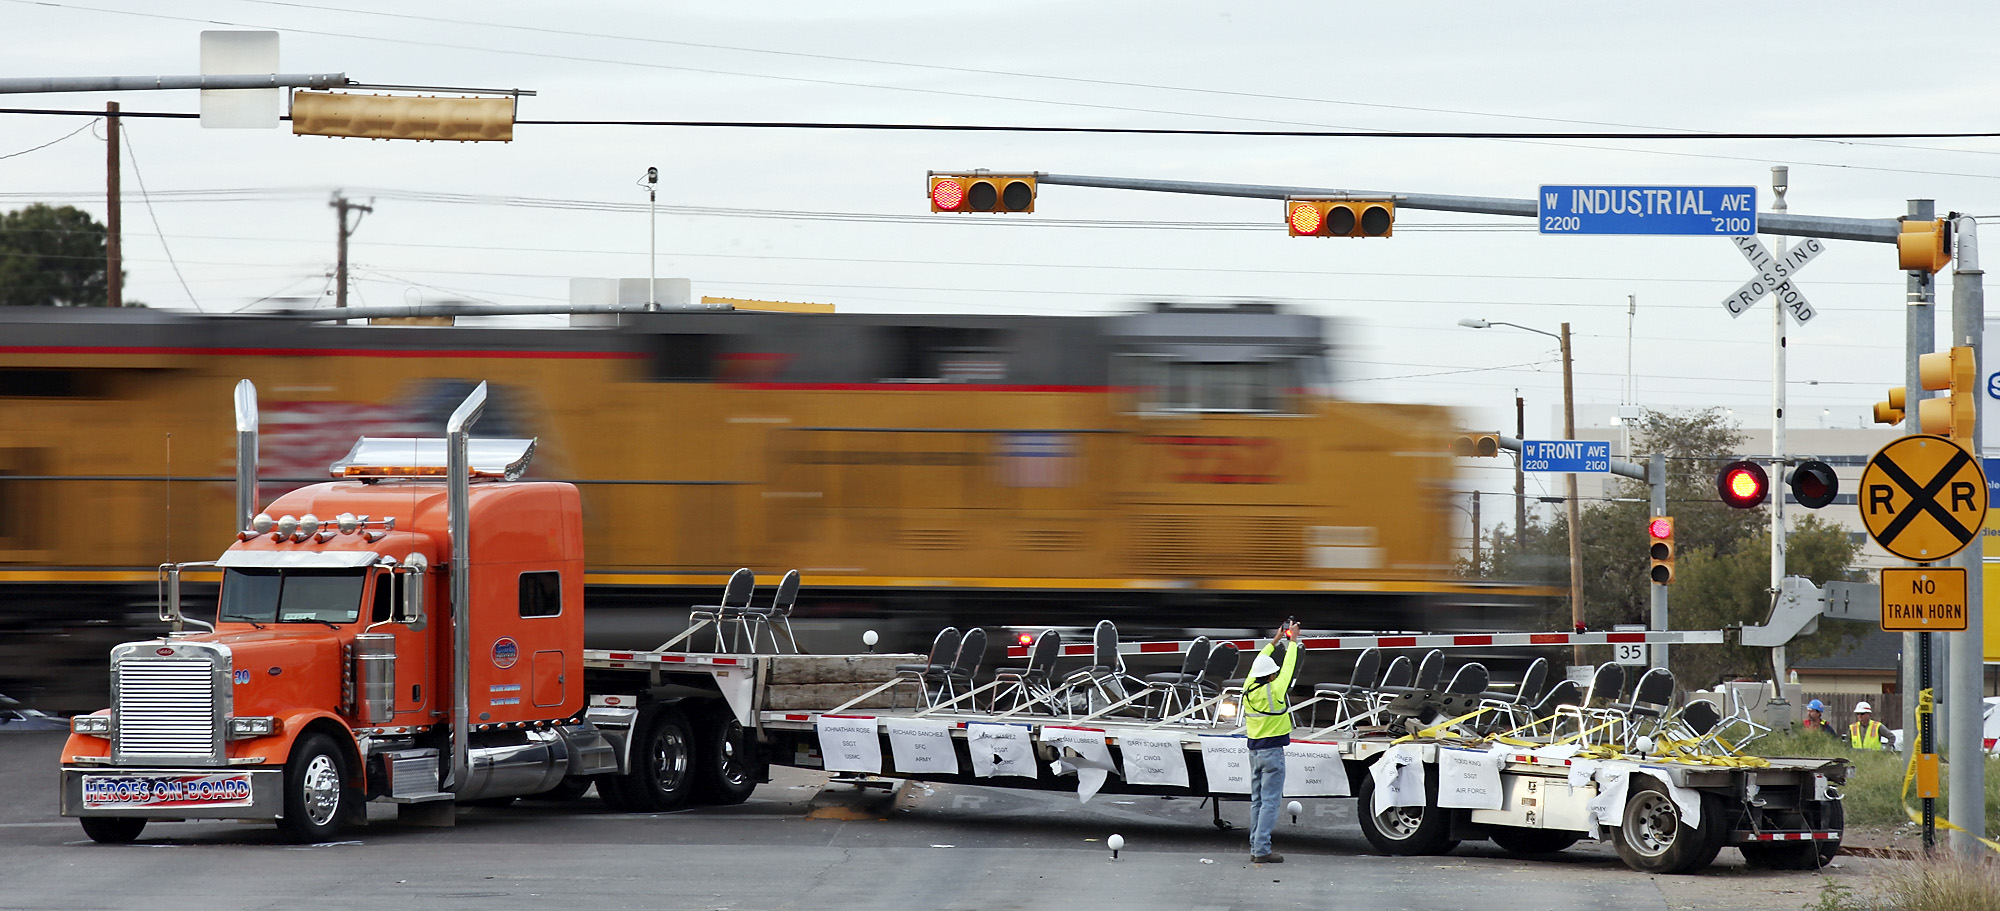 Grand jury to hear midland train crash case san antonio for Showcase motors san antonio